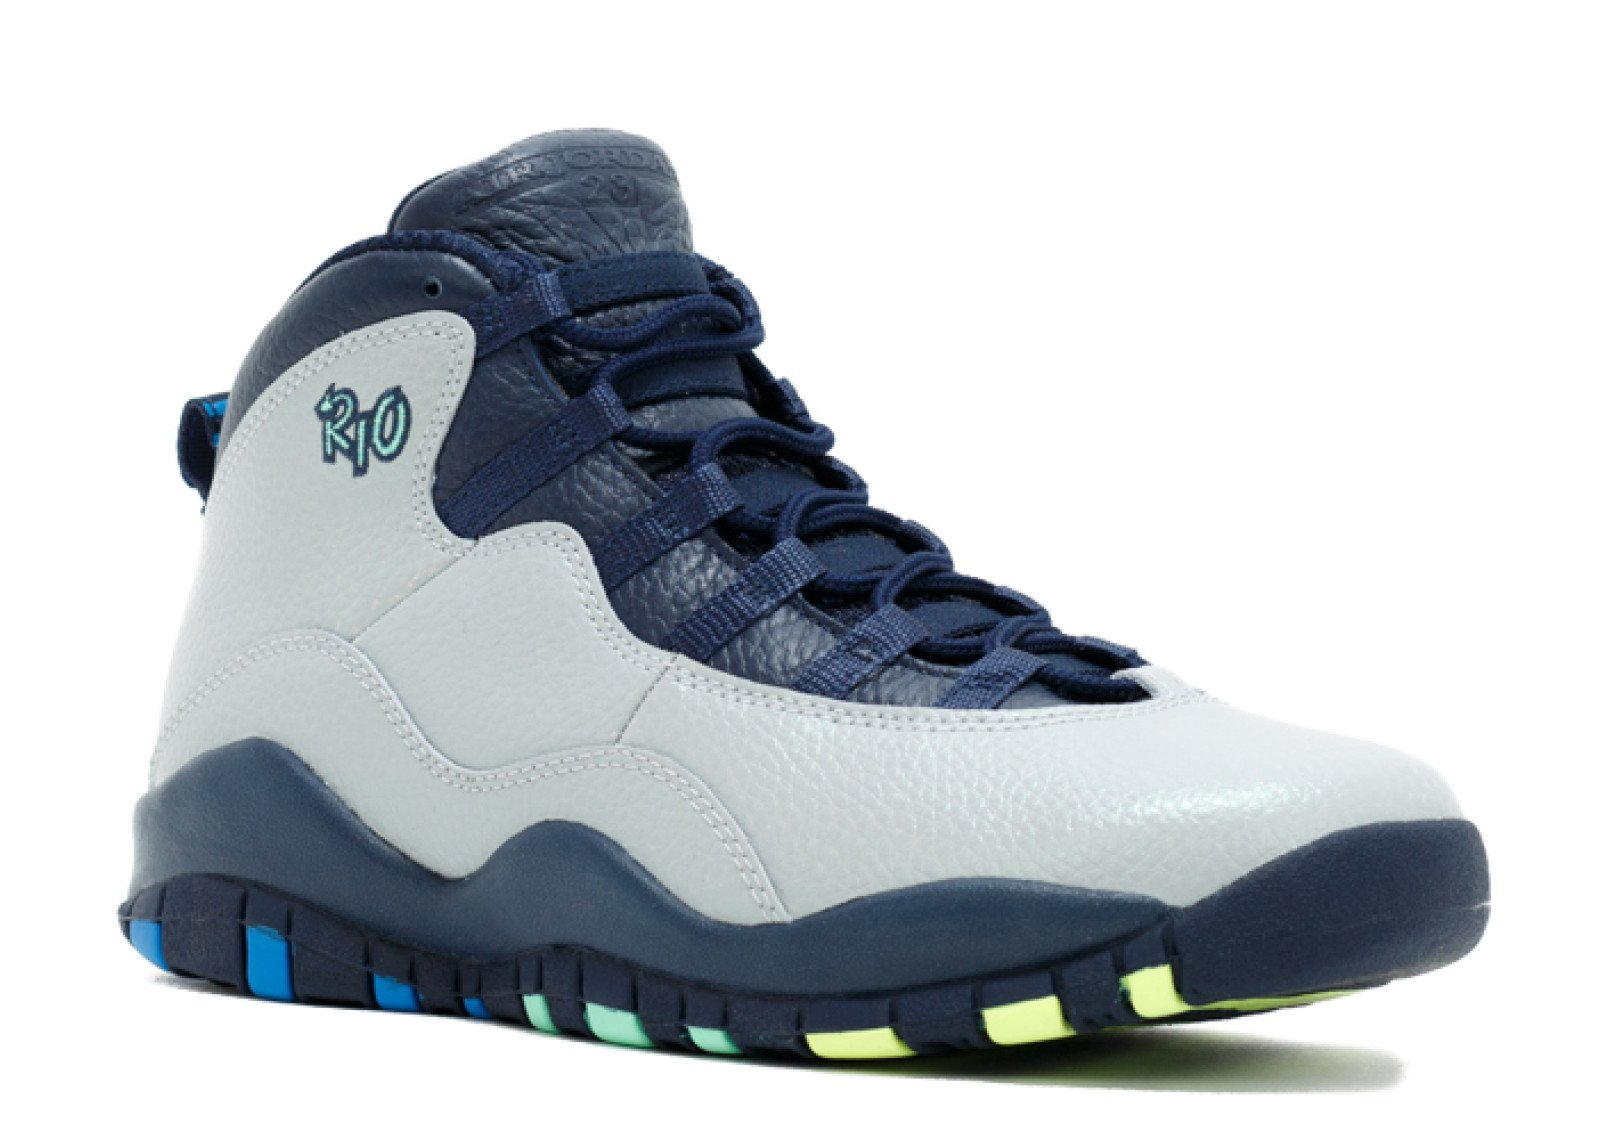 d4ace1453deb7c Galleon - Jordan Air X (10) Retro (City Pack  Rio) (Kids) Grey